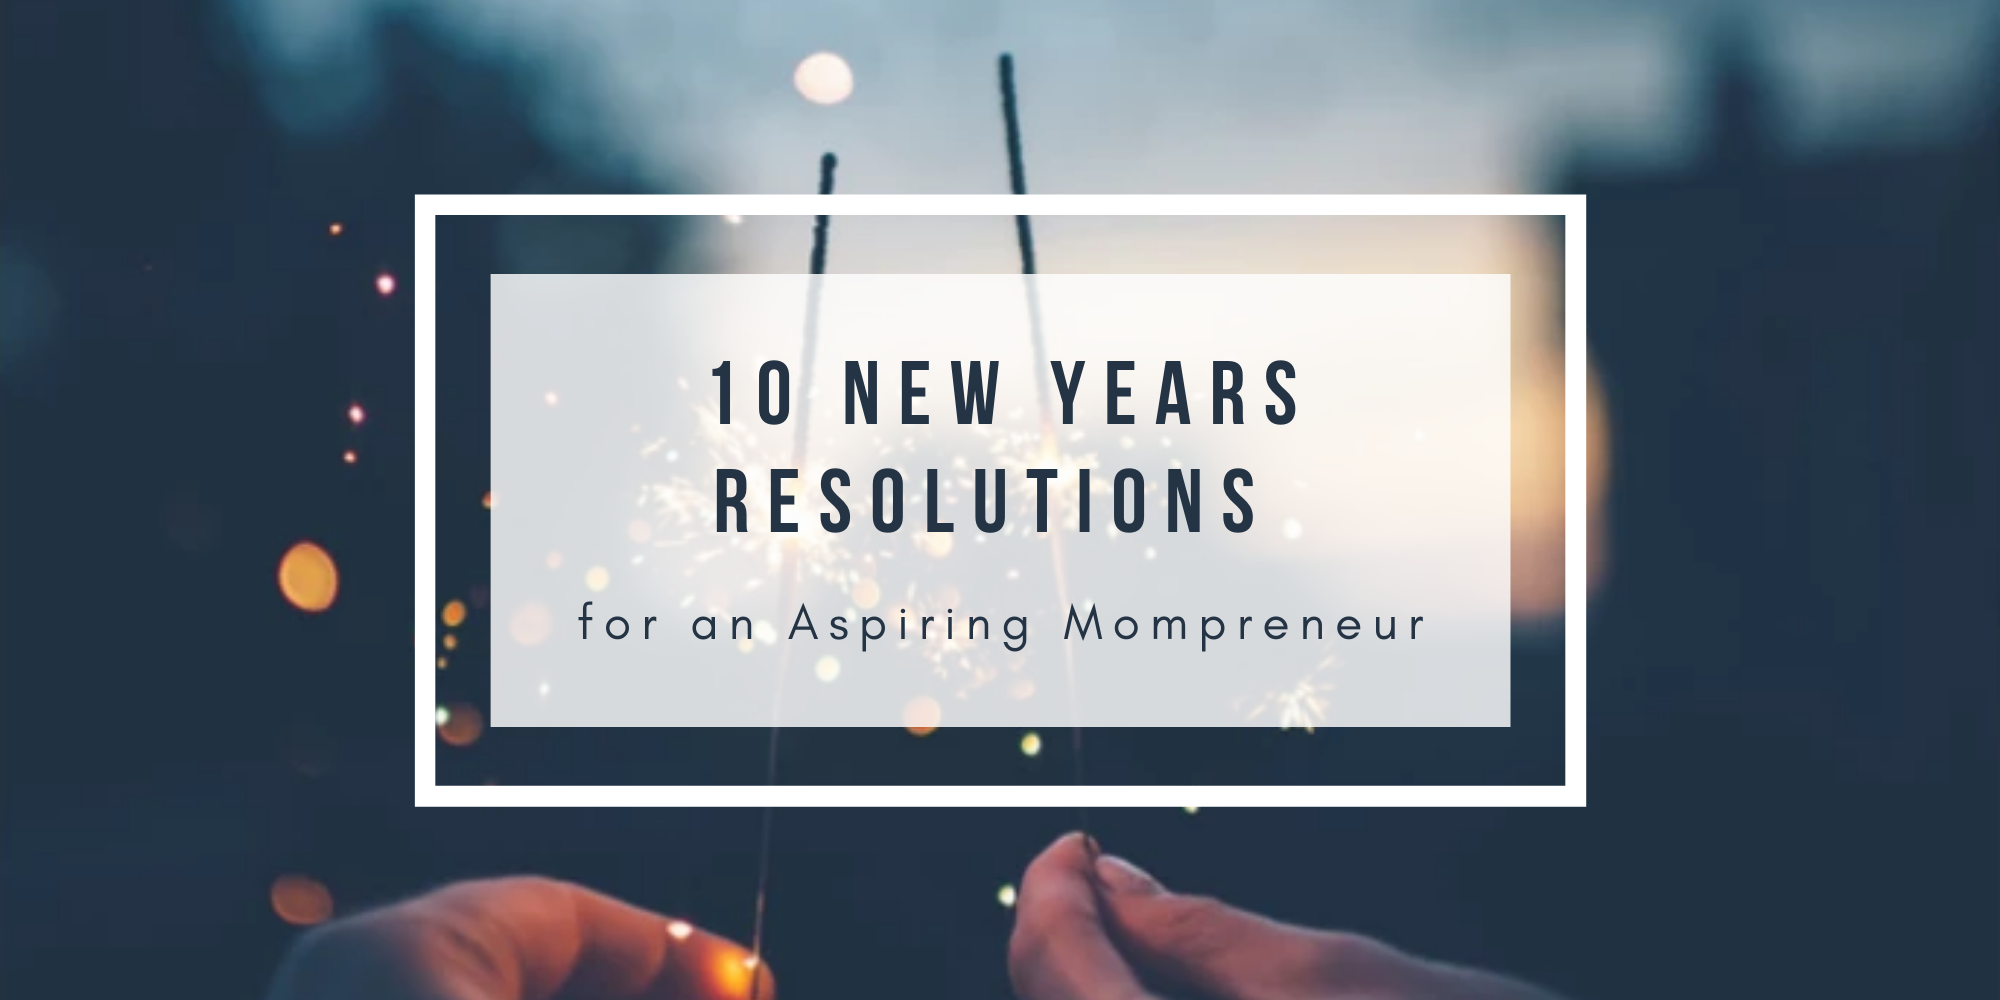 10 New Year Resolutions for an Aspiring Mompreneur